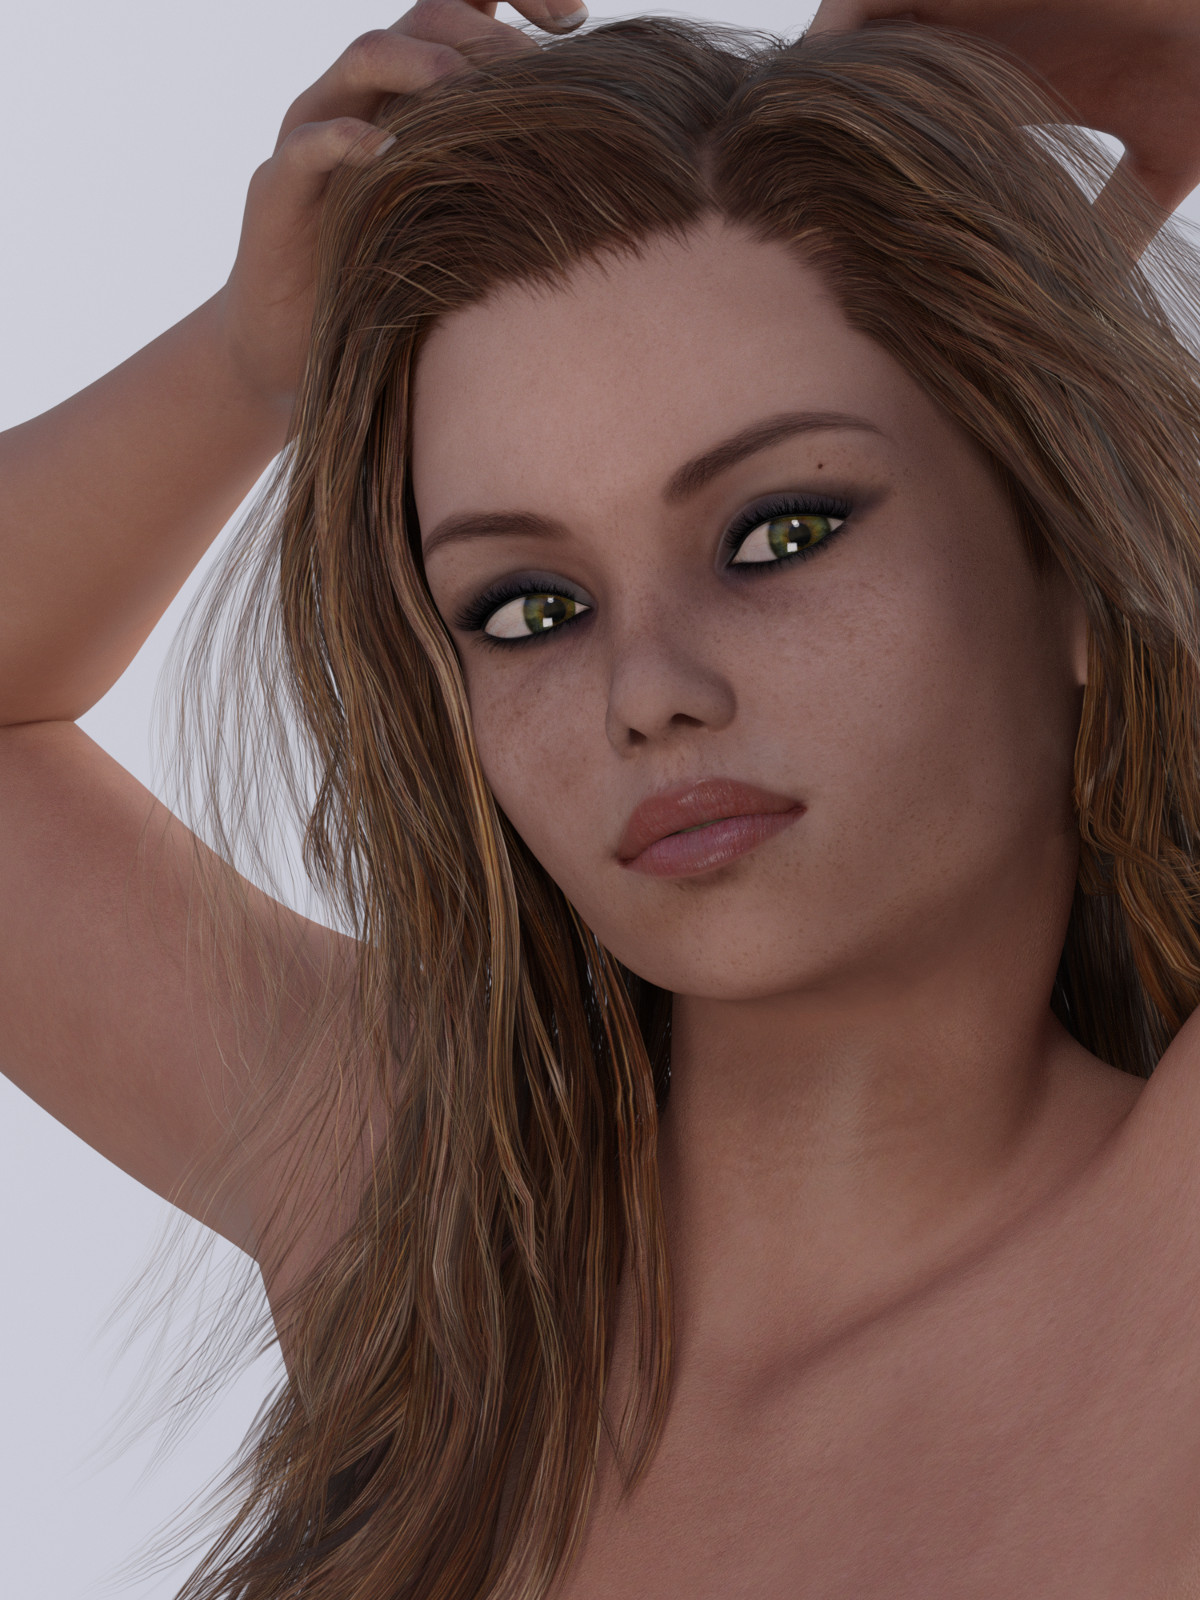 Edynn for Genesis 3 Female by Deacon215